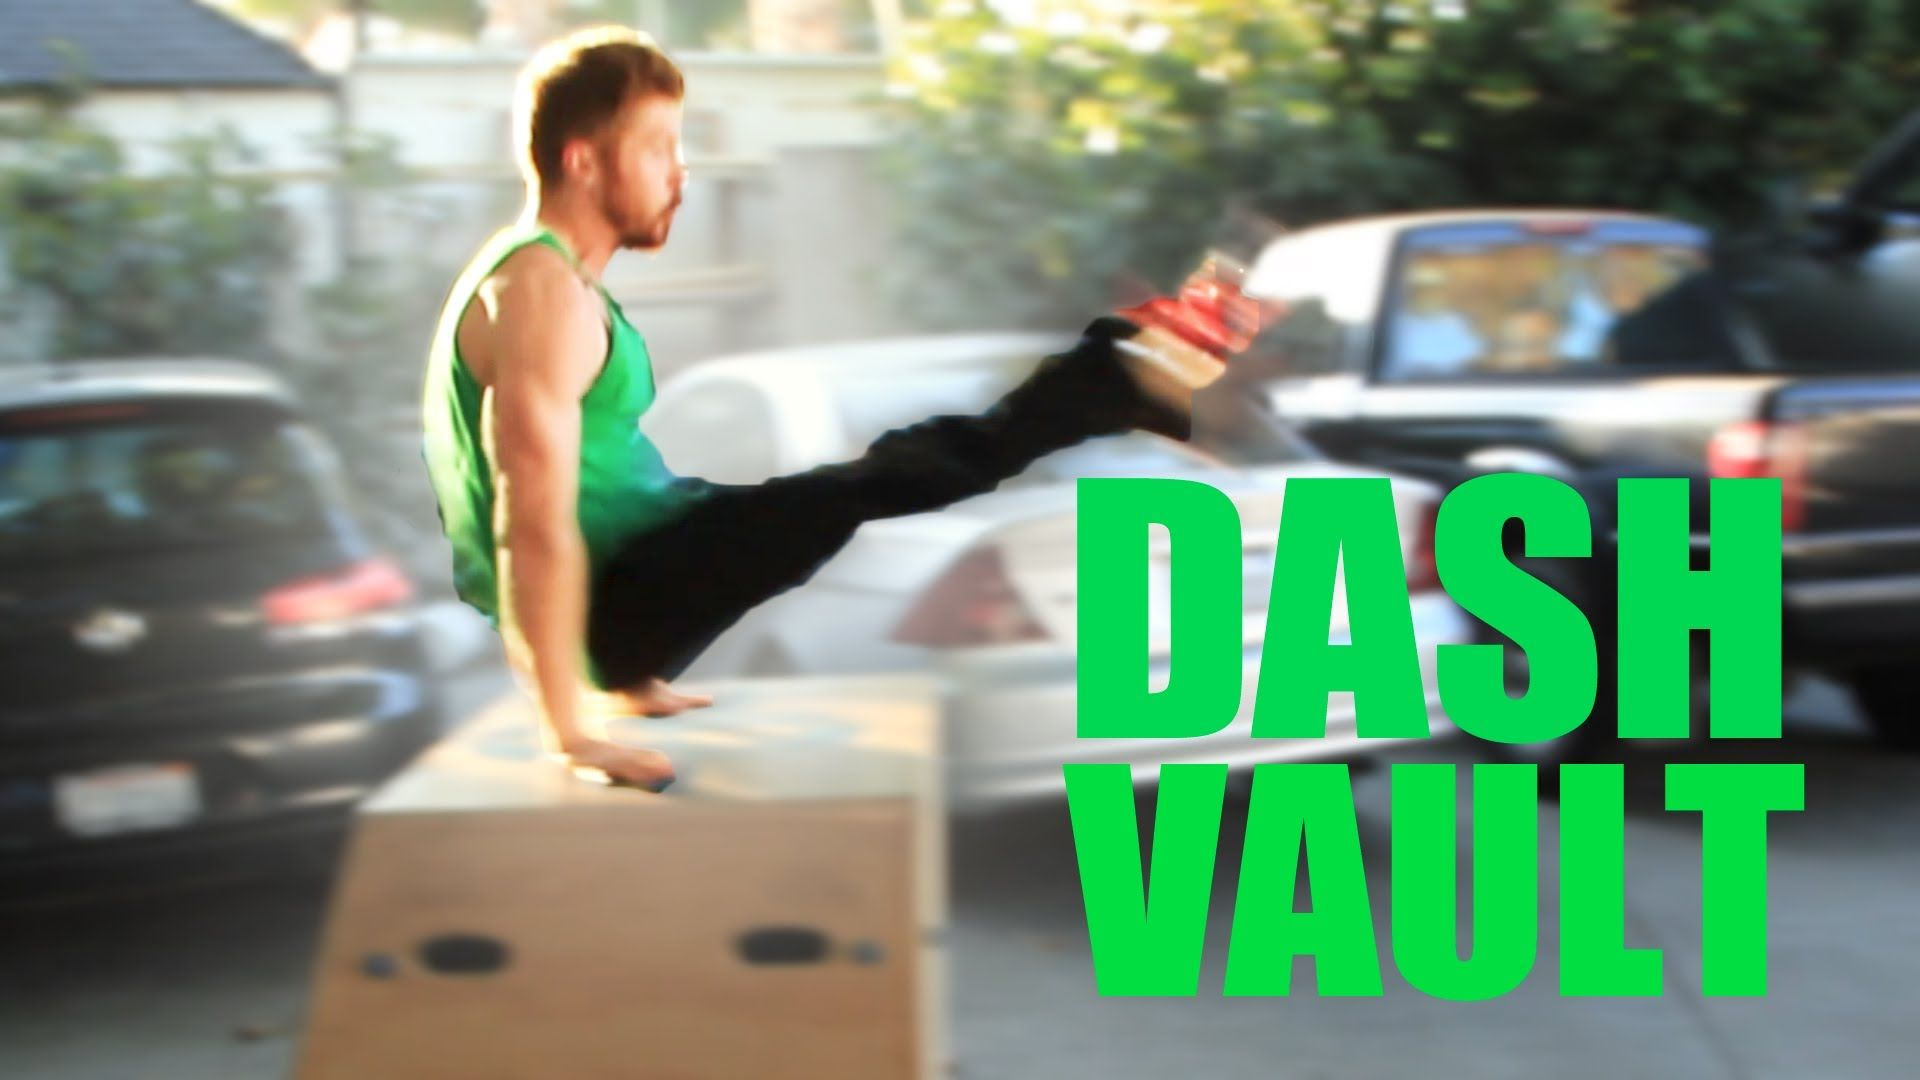 Watch How to Parkour video